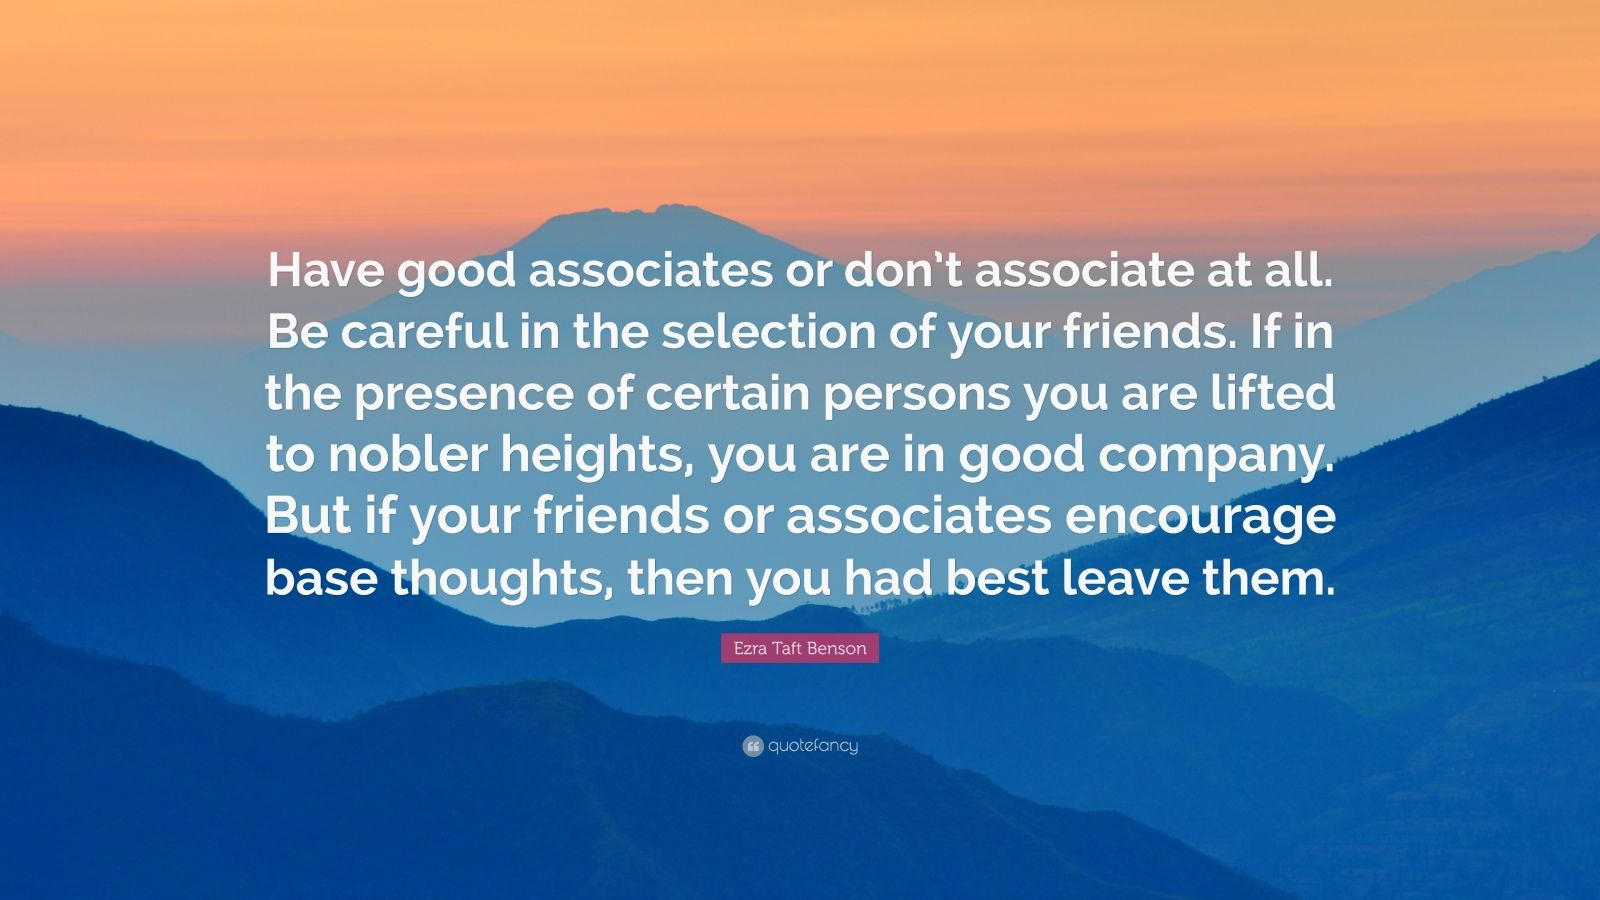 "Ezra Taft Benson Quote: ""Have good associates or don't associate at all. Be careful in the selection of your friends. If in the presence of certain persons you are lifted to nobler heights, you are in good company. But if your friends or associates encourage base thoughts, then you had best leave them."""